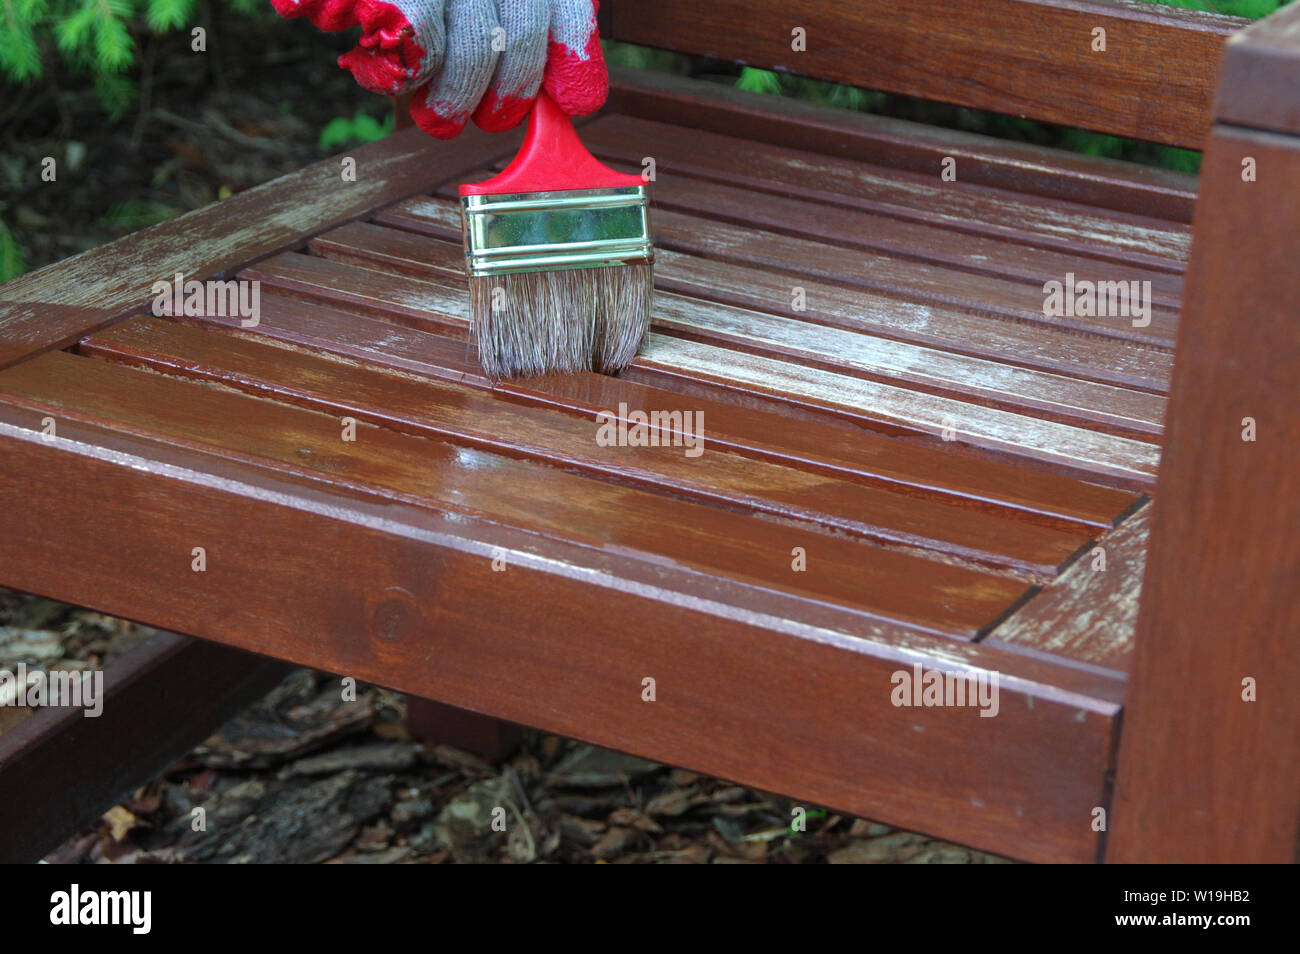 Garden Furniture Brush Painting Hand Painting The Wooden Chair Outdoor Stock Photo Alamy